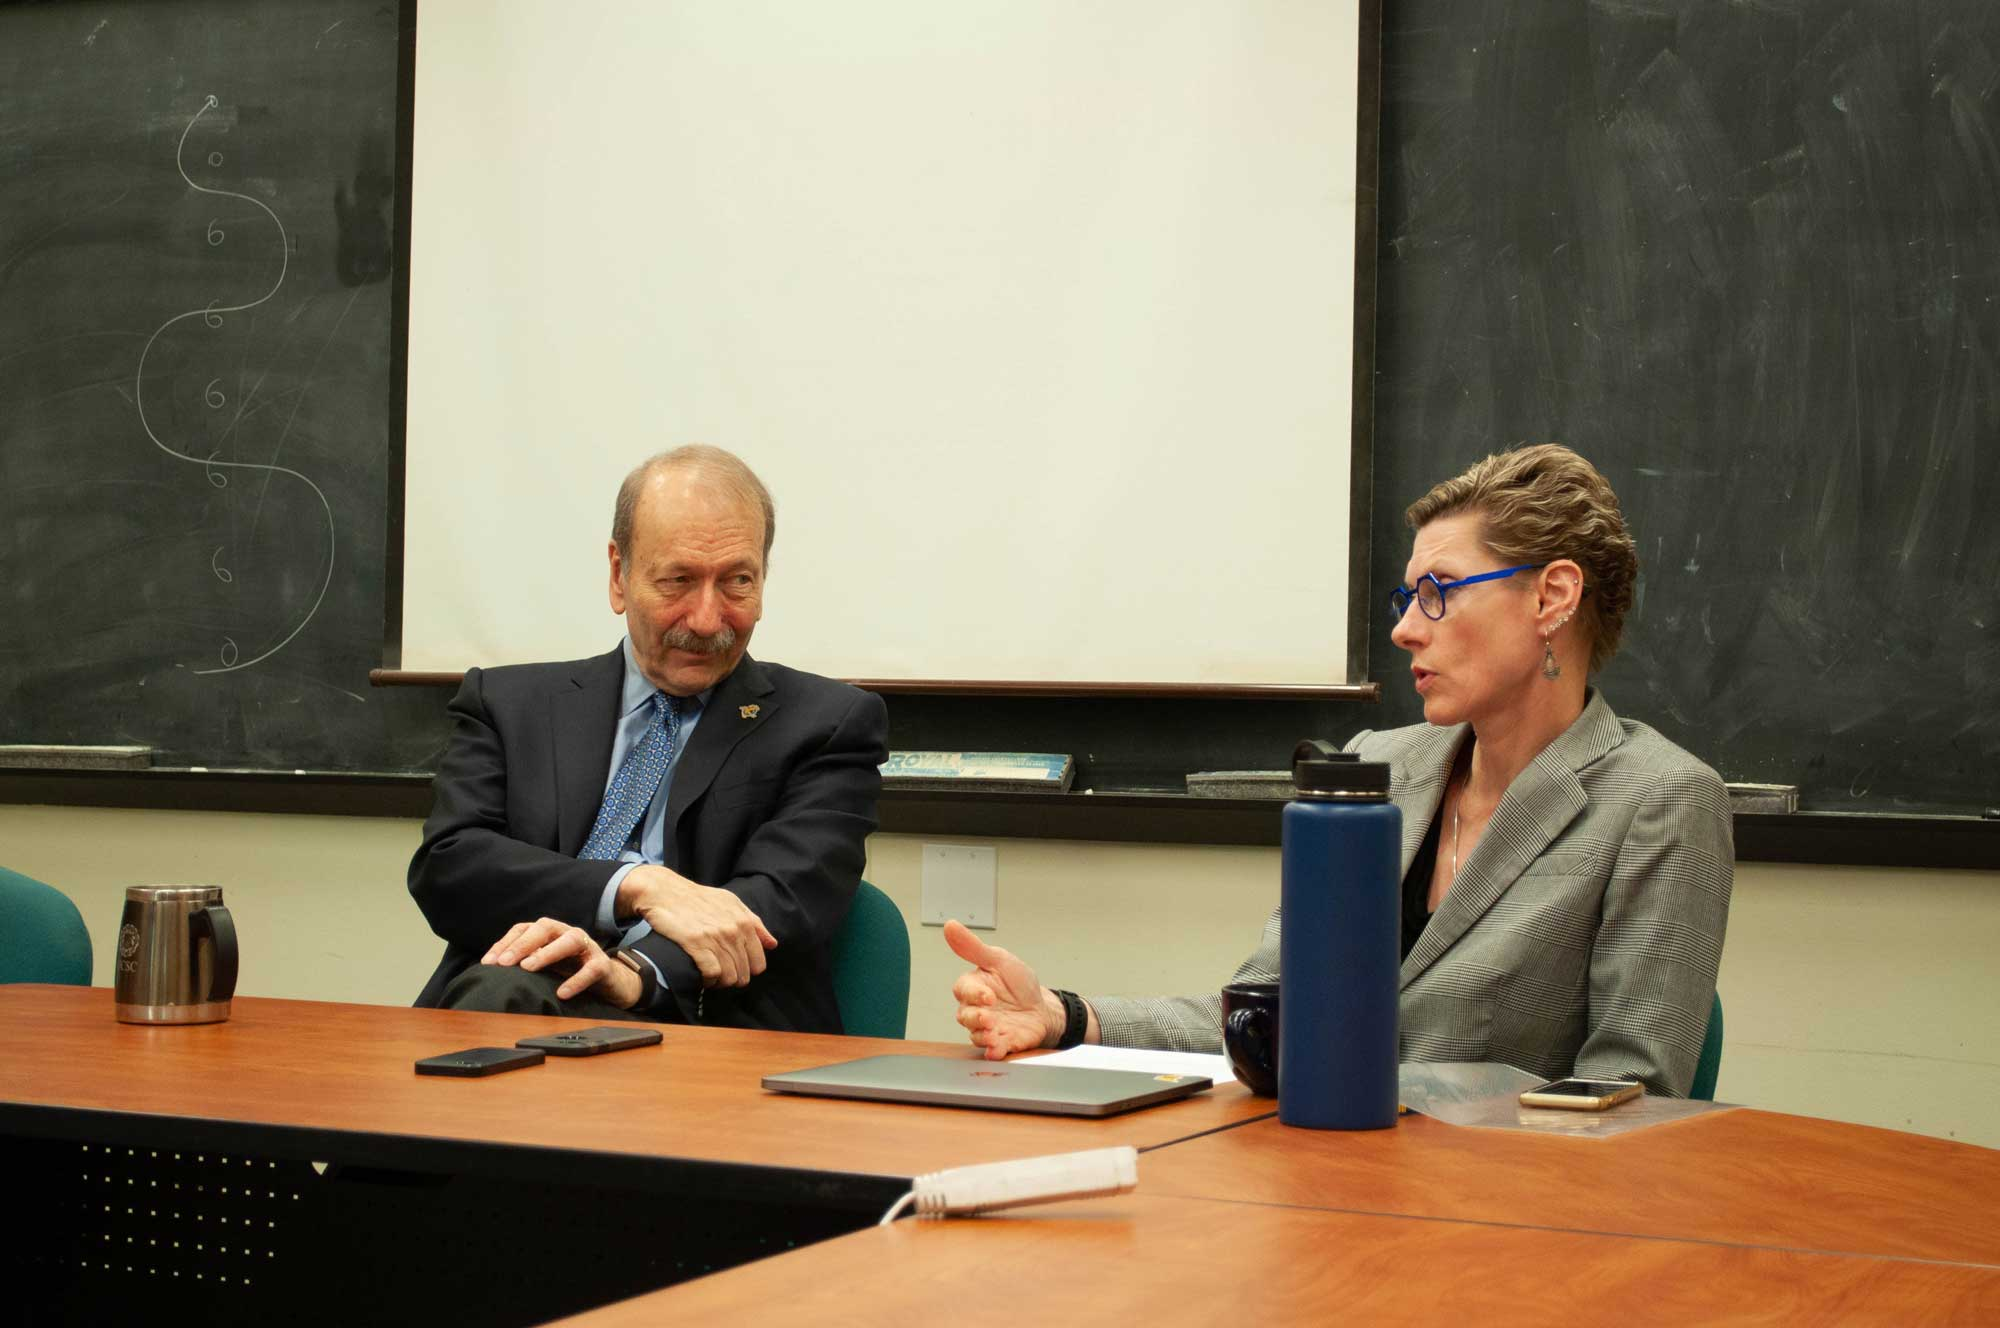 Q&A with Blumenthal and Tromp